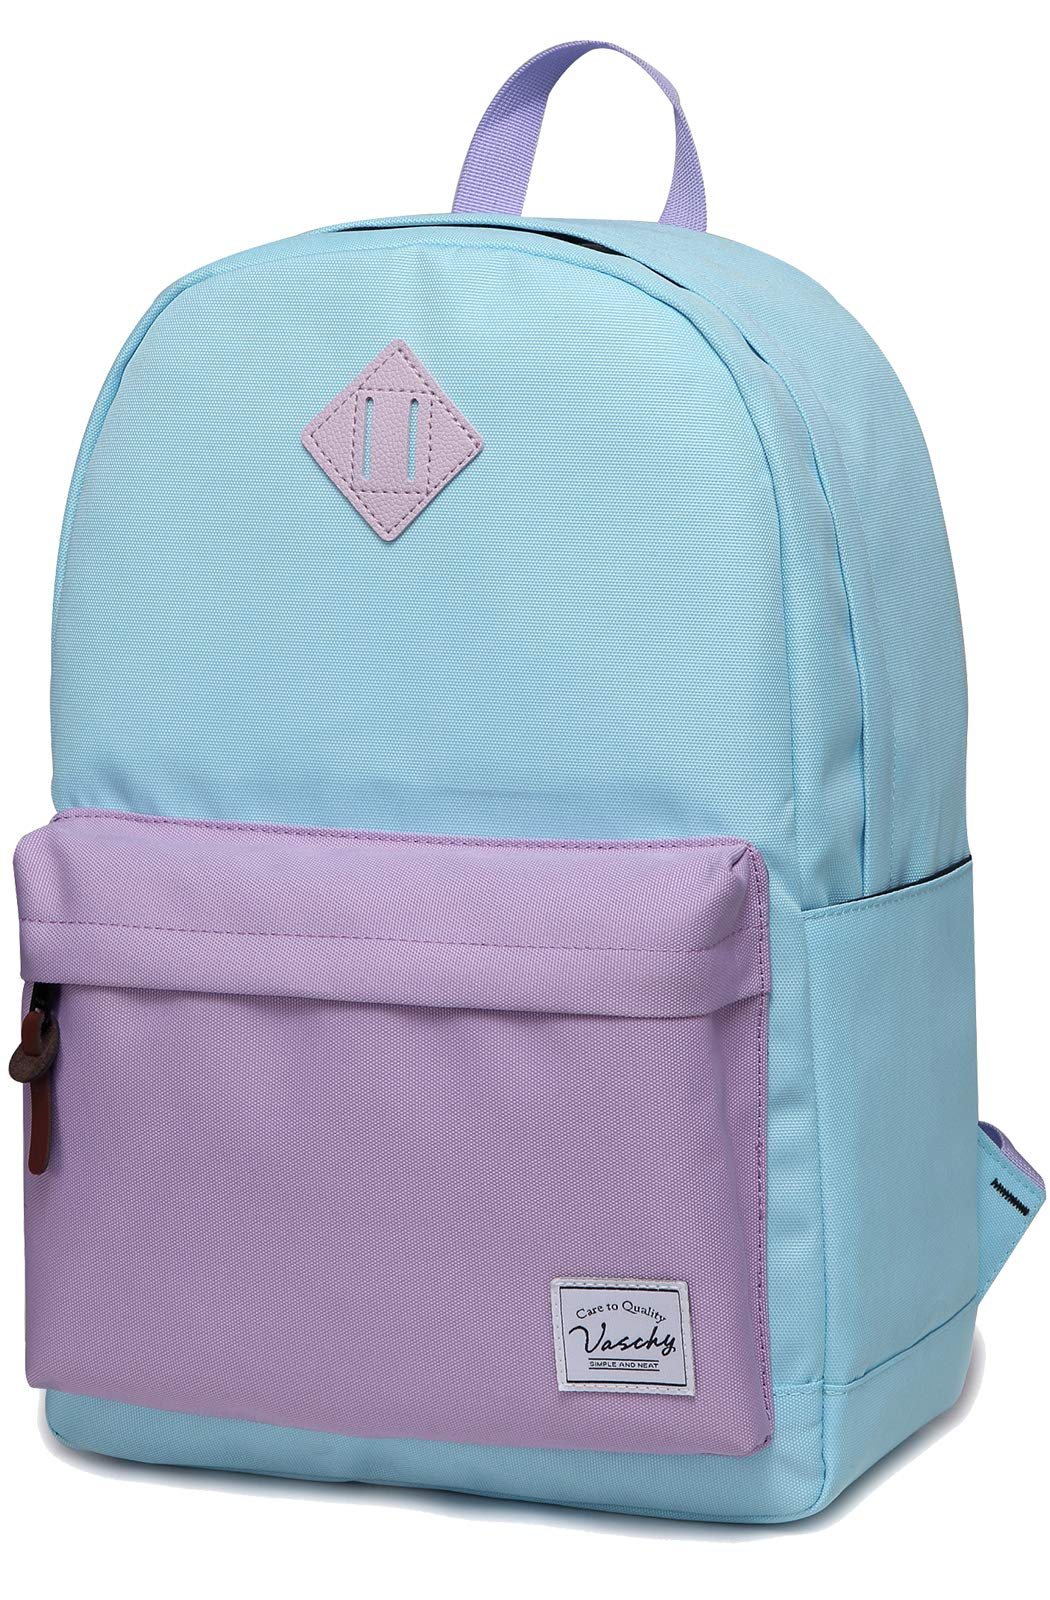 Backpack for Teen Girls, Vaschy Classic Water Resistant School College Bookbag Casual Daypack Travel Rucksack with Bottle Pockets Fits 15Inch Laptop (Sky Blue Purple) by VASCHY (Image #1)